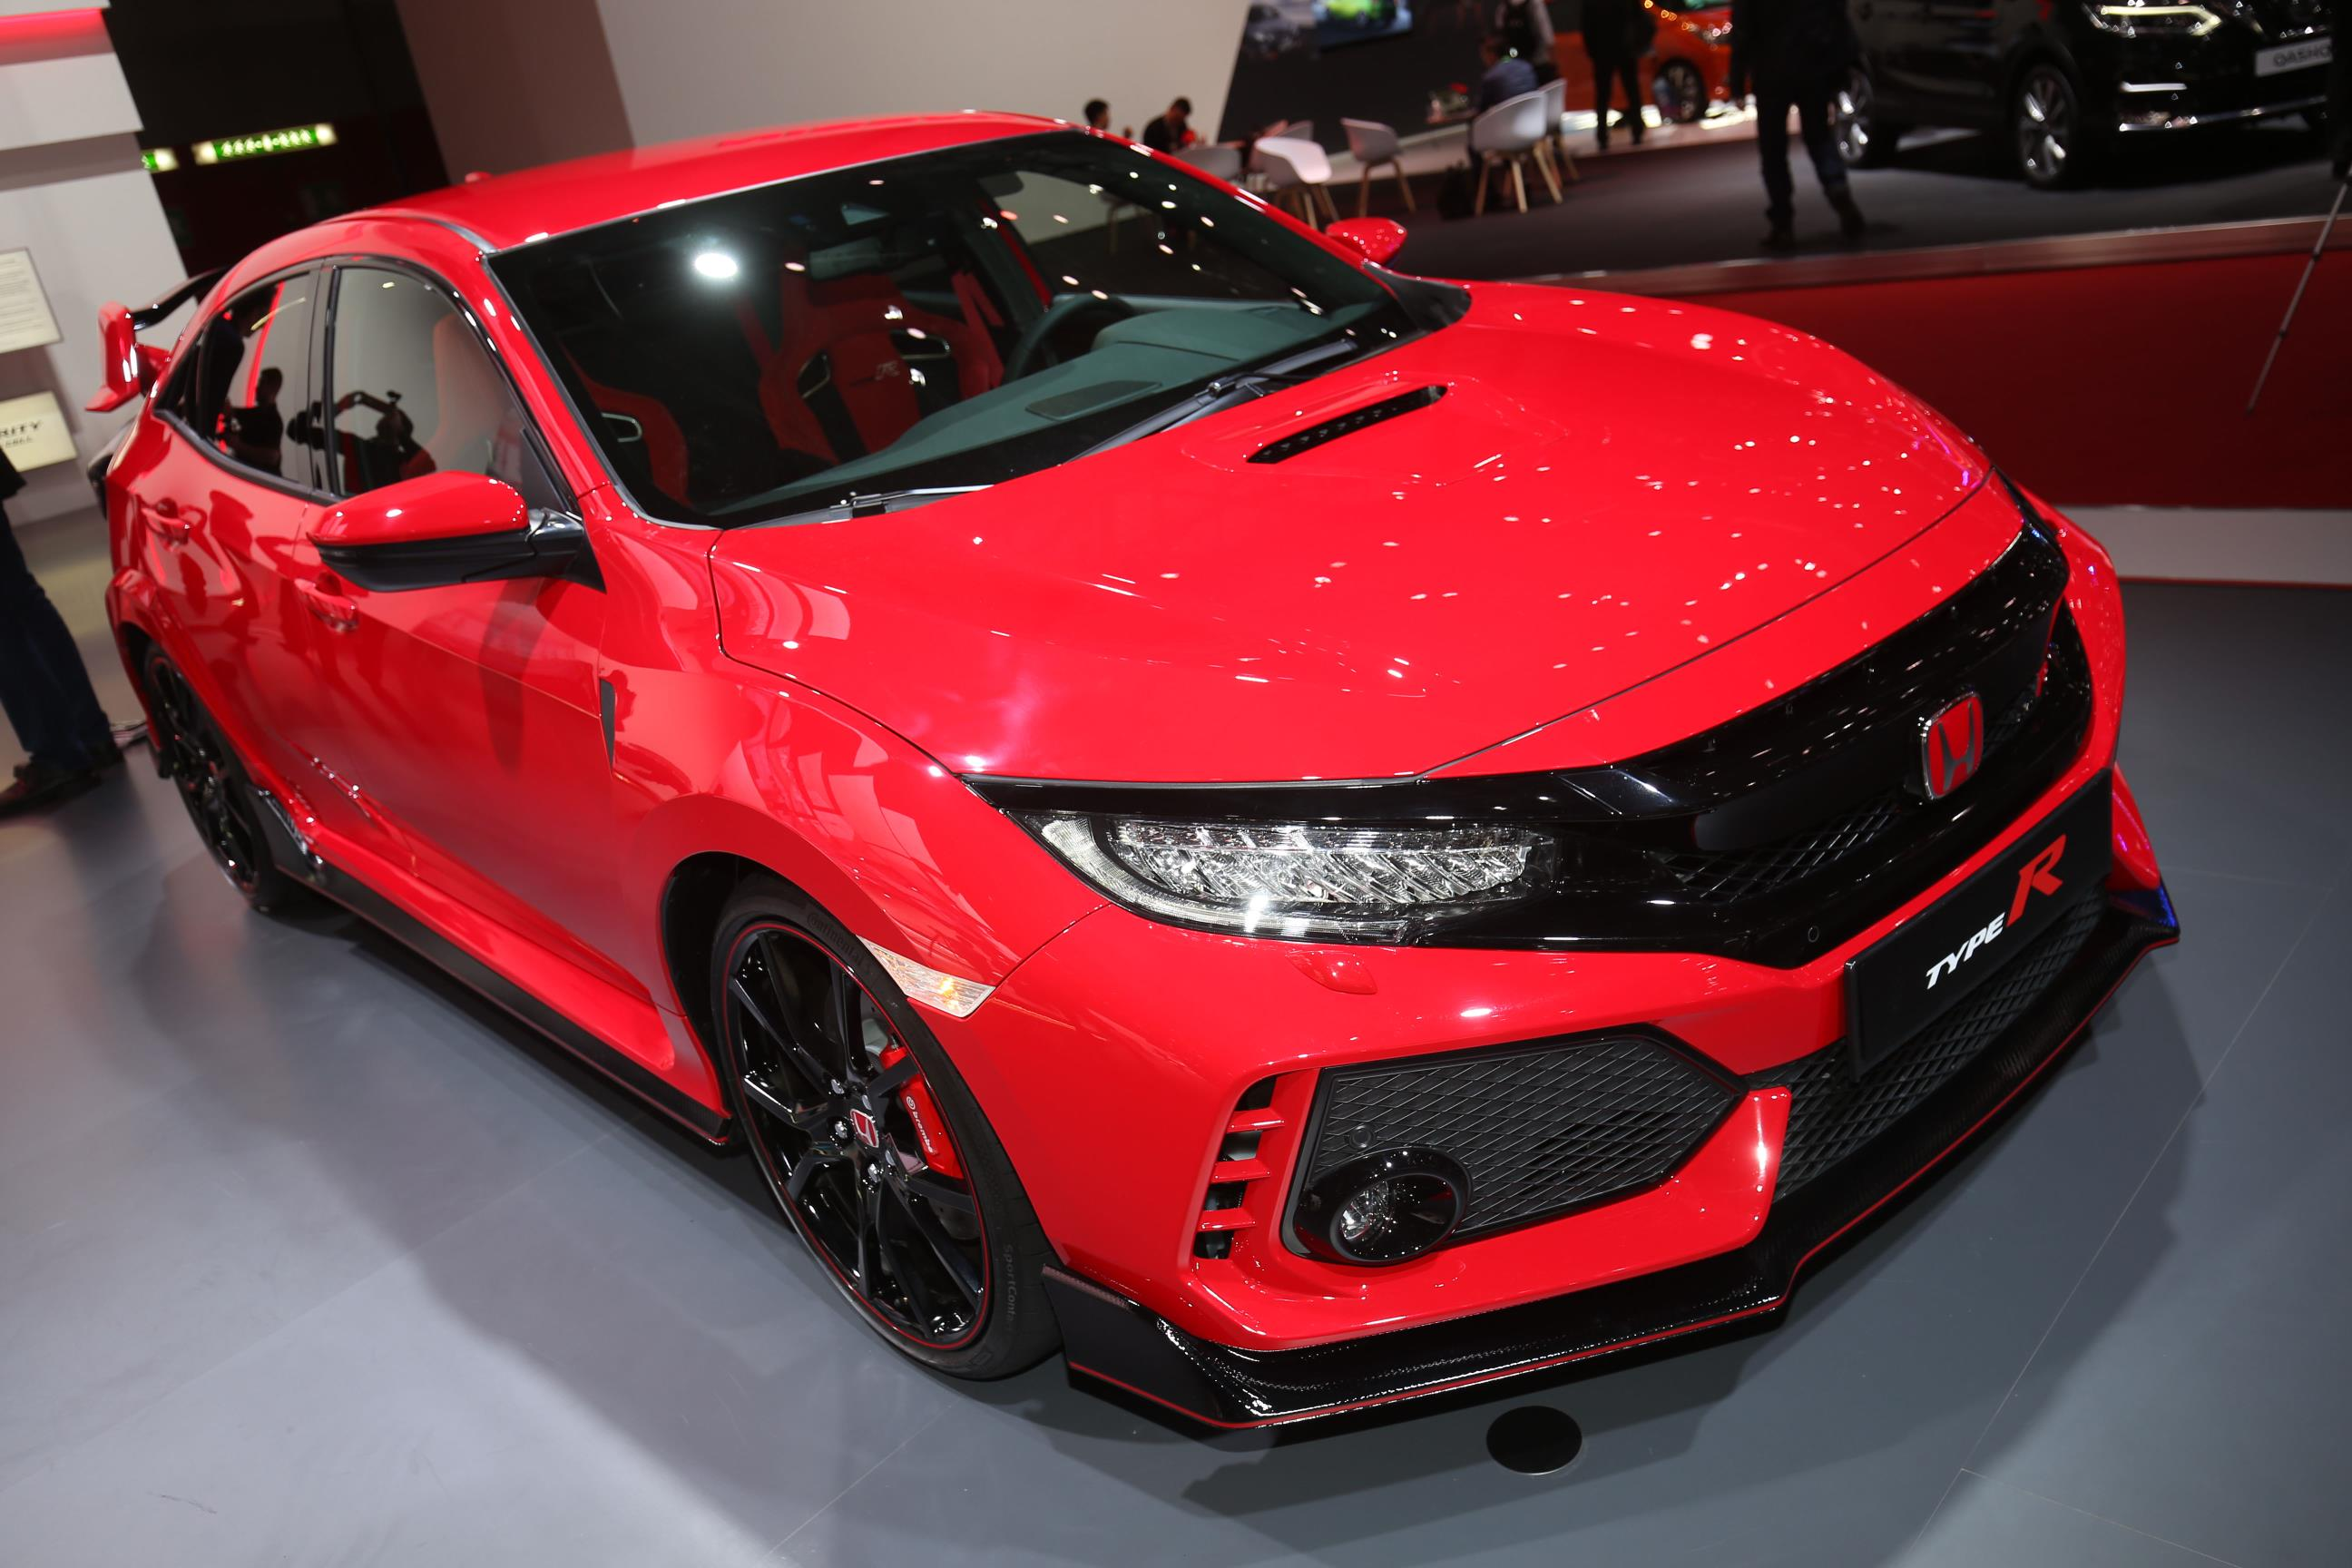 Honda Shows Off 2018 Civic Type R In Promo Video, Exhaust ...